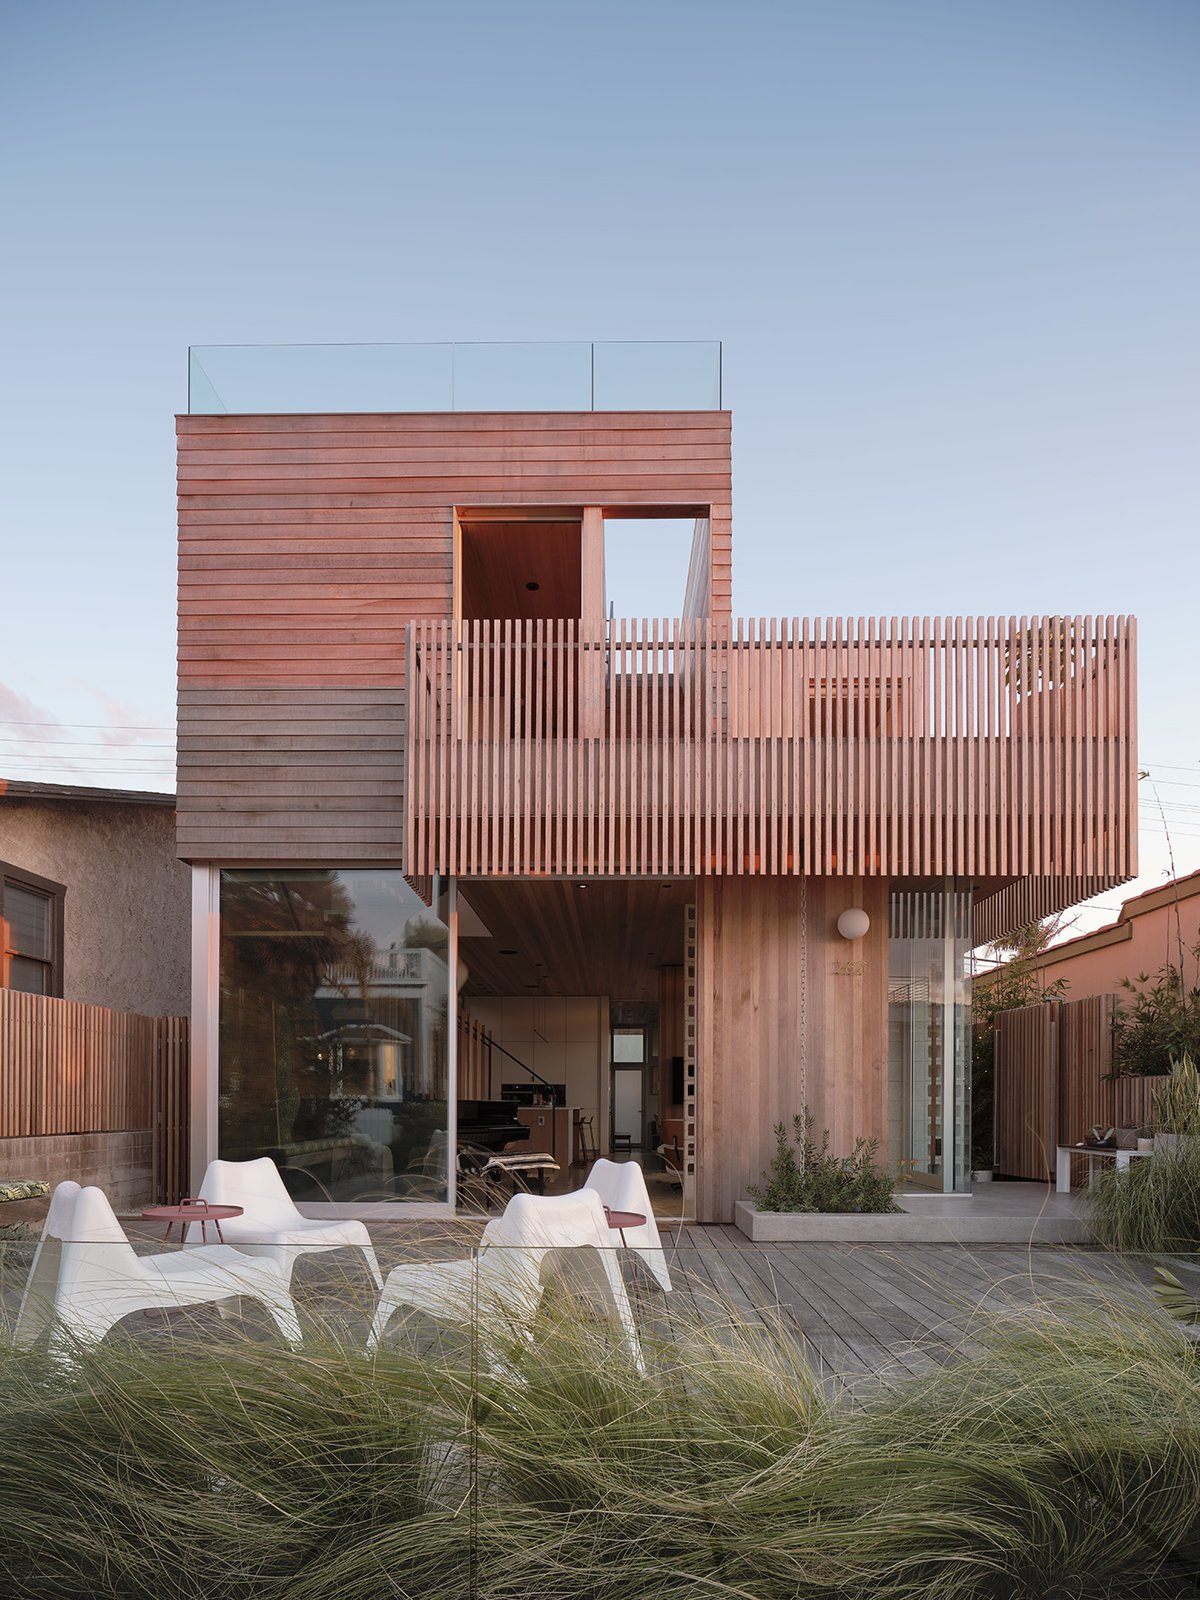 Exterior, House, Beach House, Wood, and Flat Making maximum use of a tight footprint, architect Robert Sweet designed a two-story home in Hermosa Beach that provides plenty of flexible indoor/outdoor space for residents Anton and Mardi Watts and their children.  Exterior Flat Wood Beach House Photos from It Took a Neighborhood to Build This Beachside Bungalow